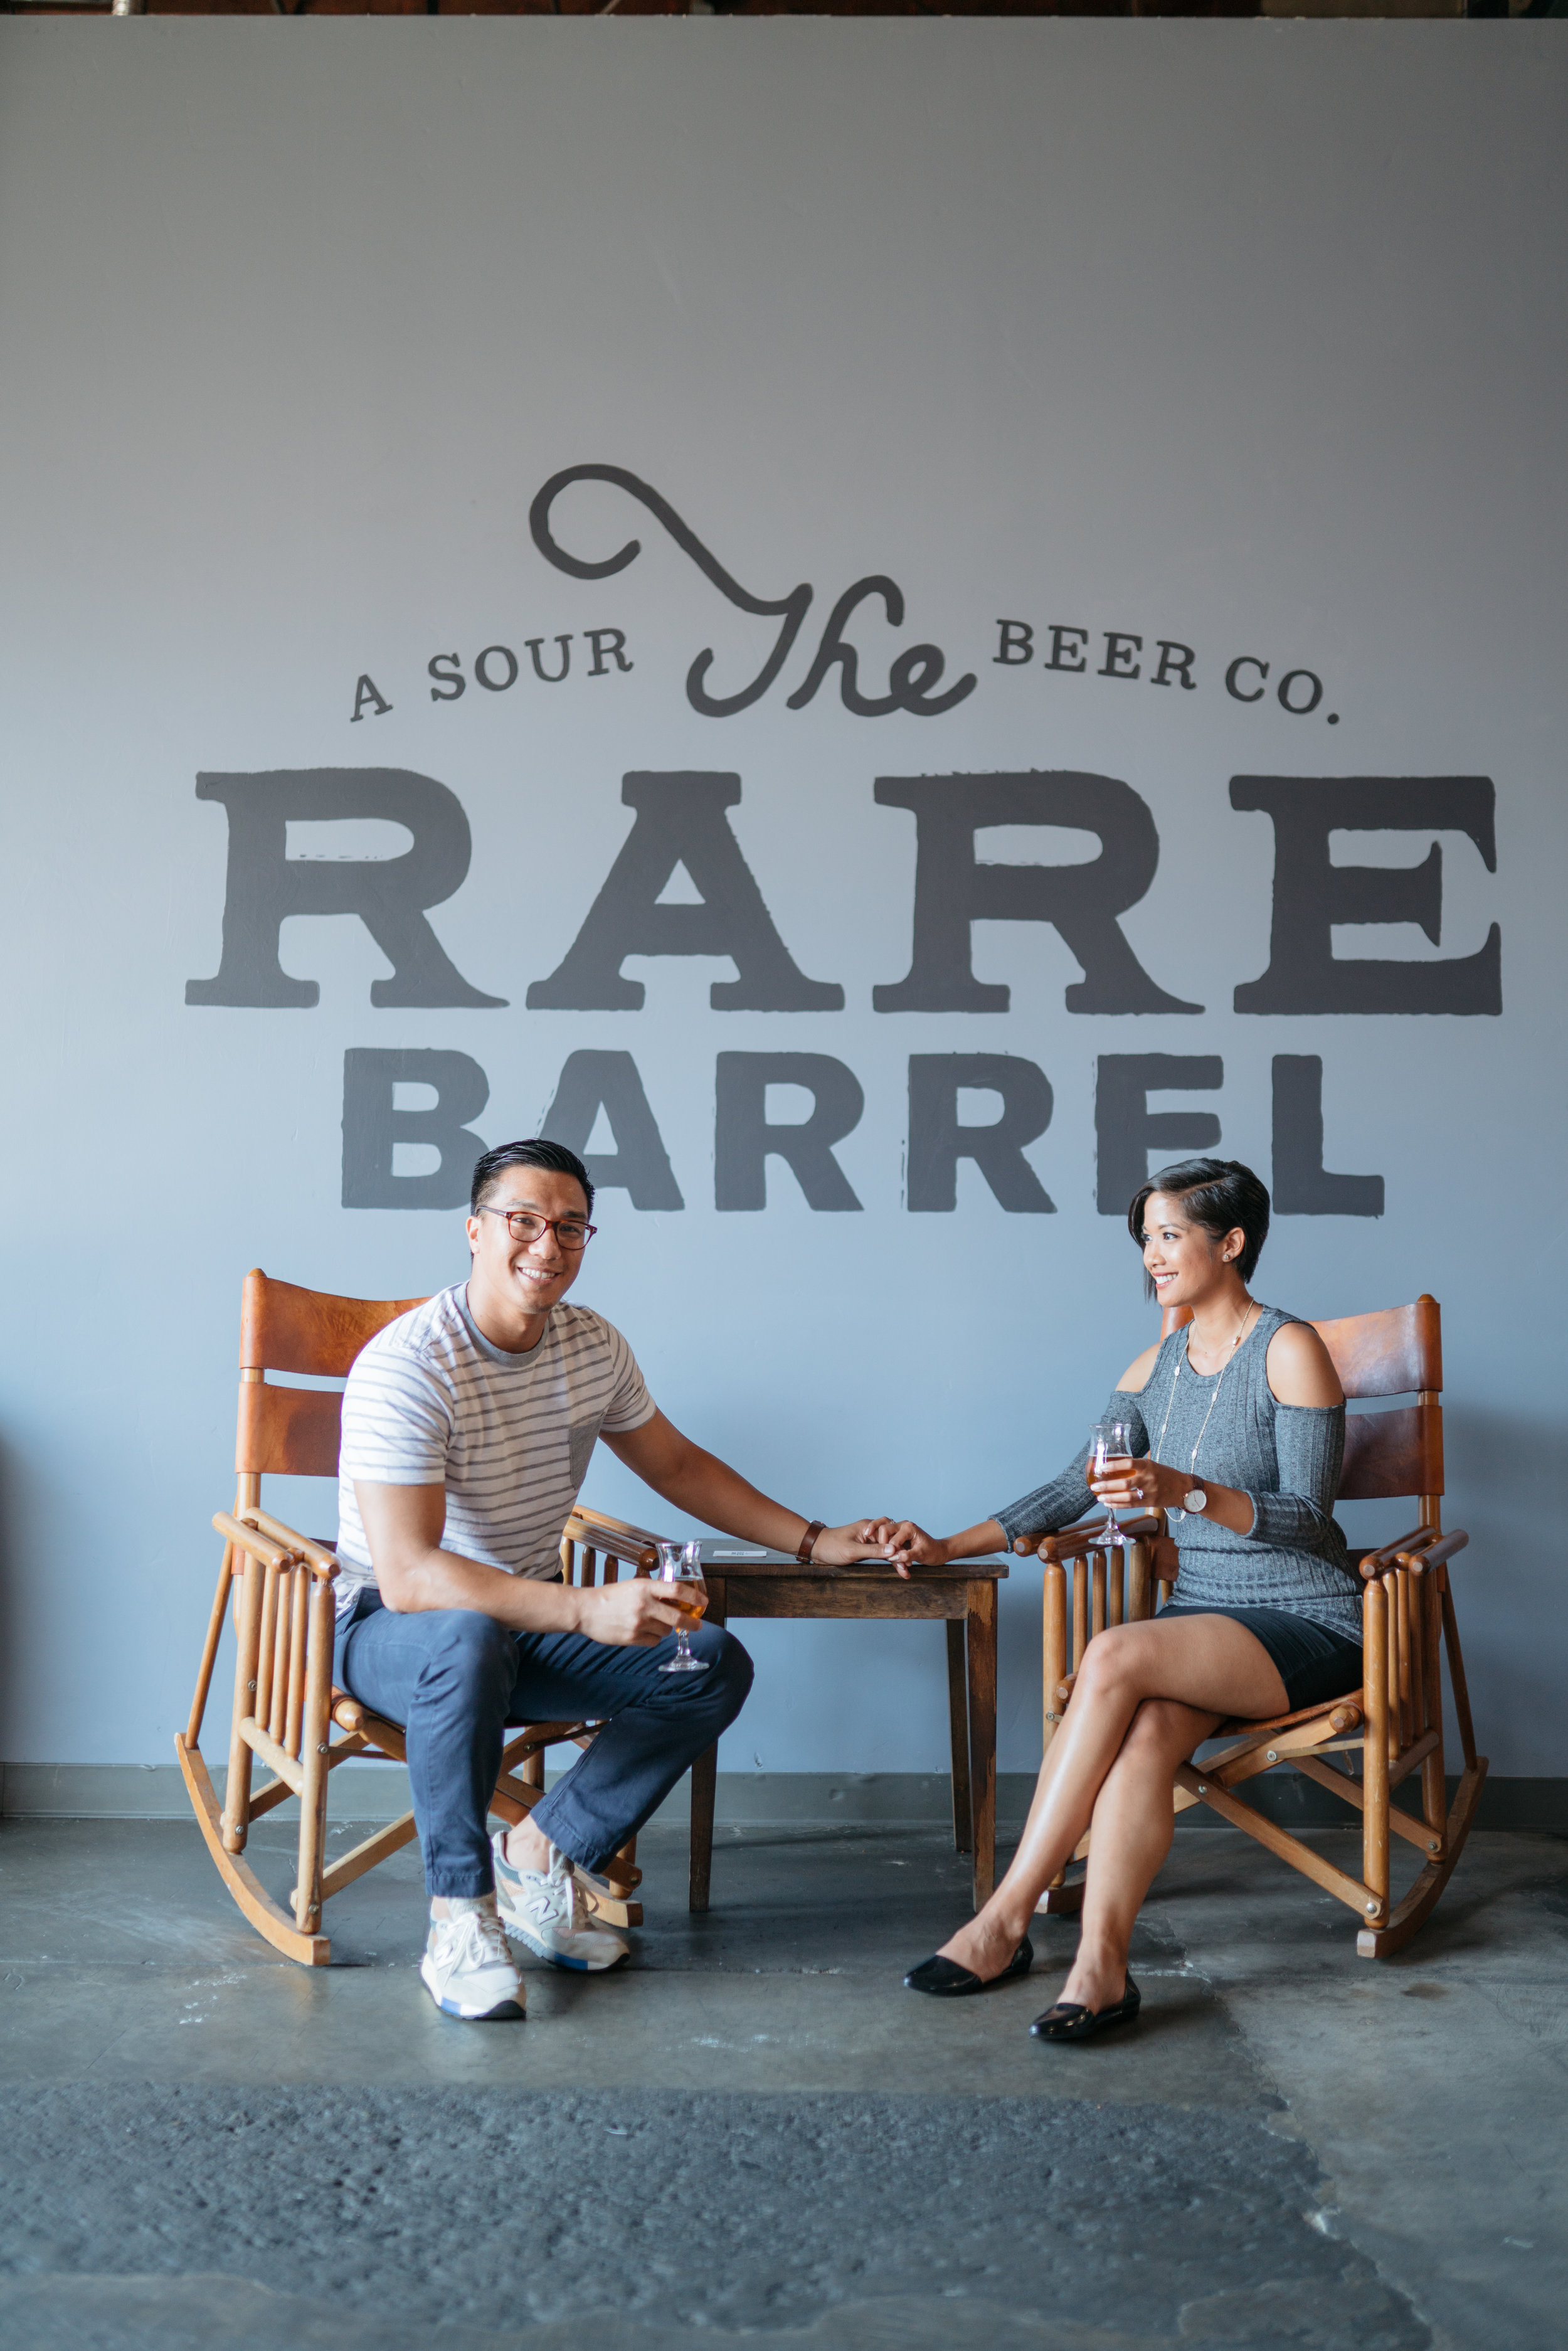 This is obligatory - sitting down in front of the Rare Barrel sign